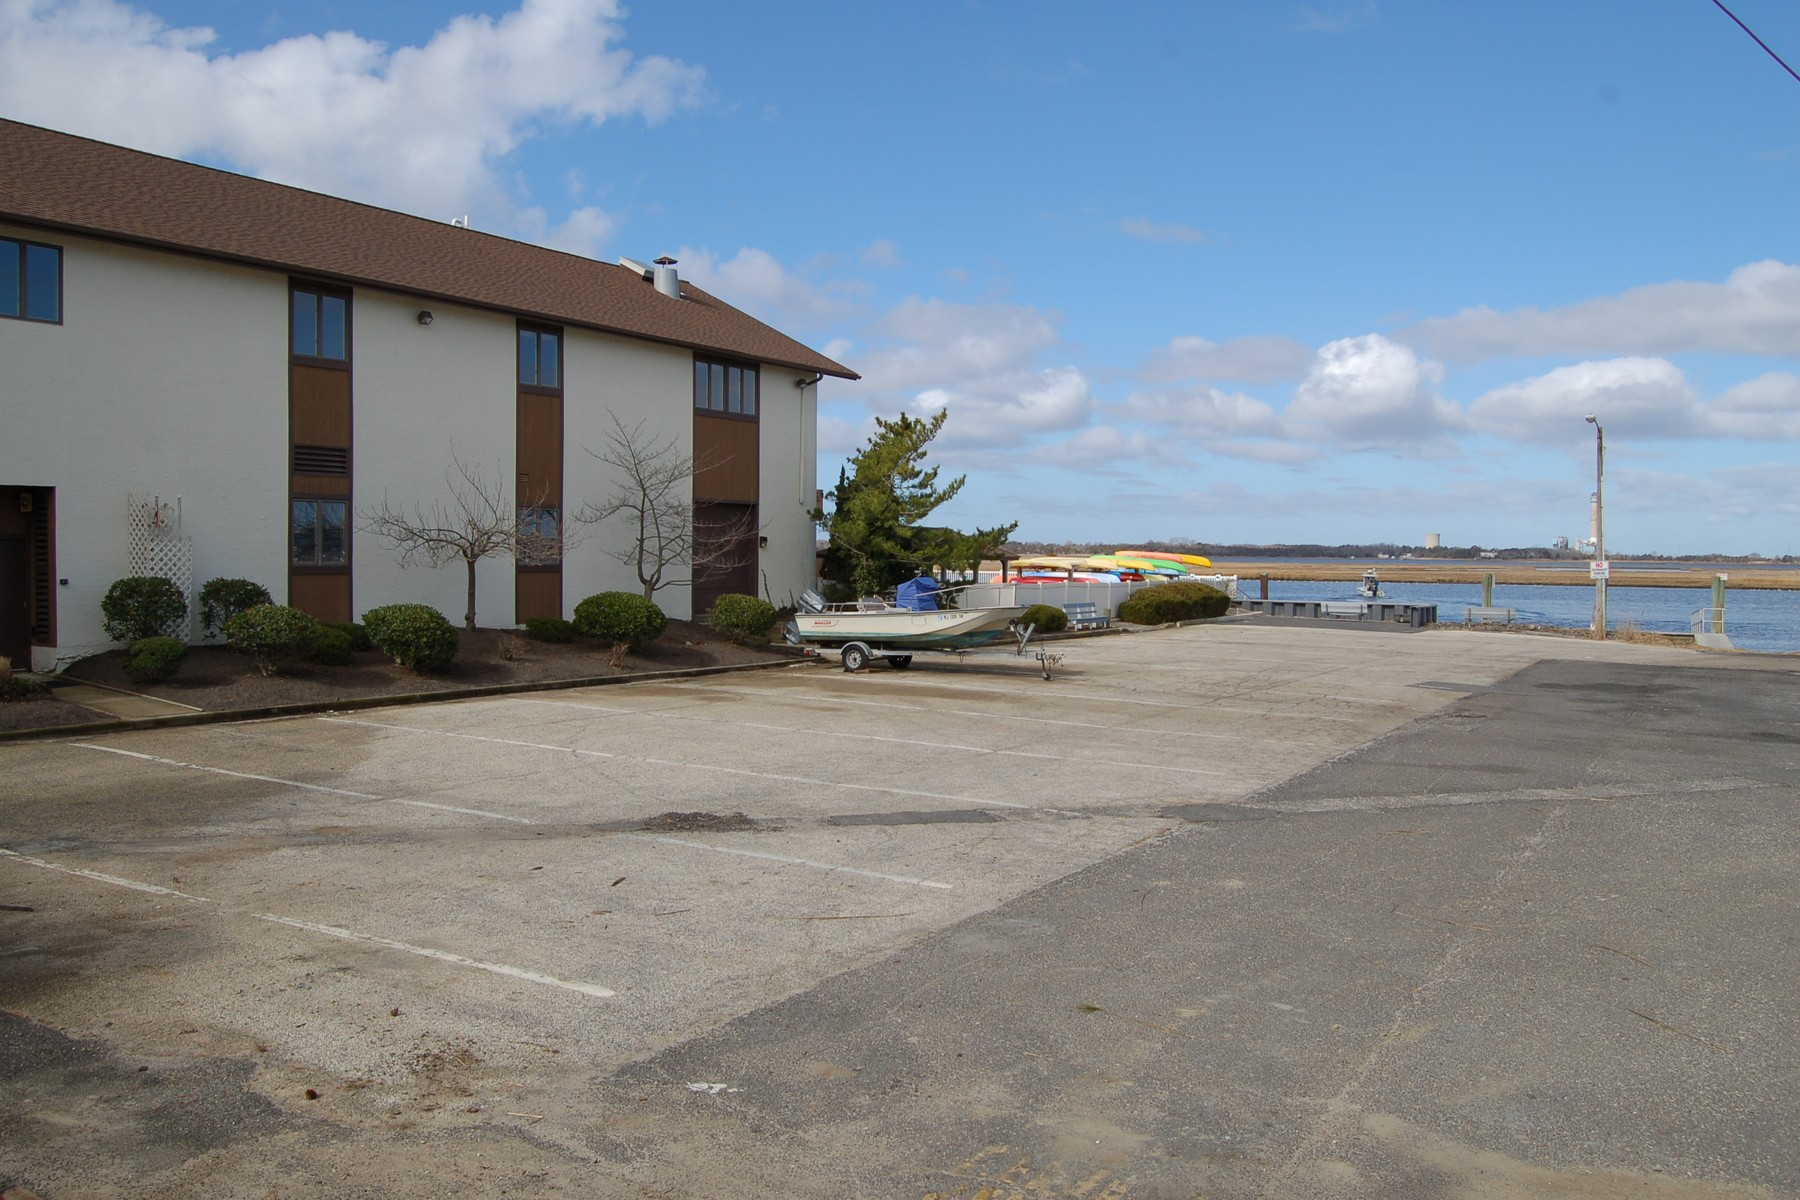 Commercial for Sale at Rare Bayfront Commercial Building 50 Tennessee Avenue Ocean City, New Jersey 08226 United States